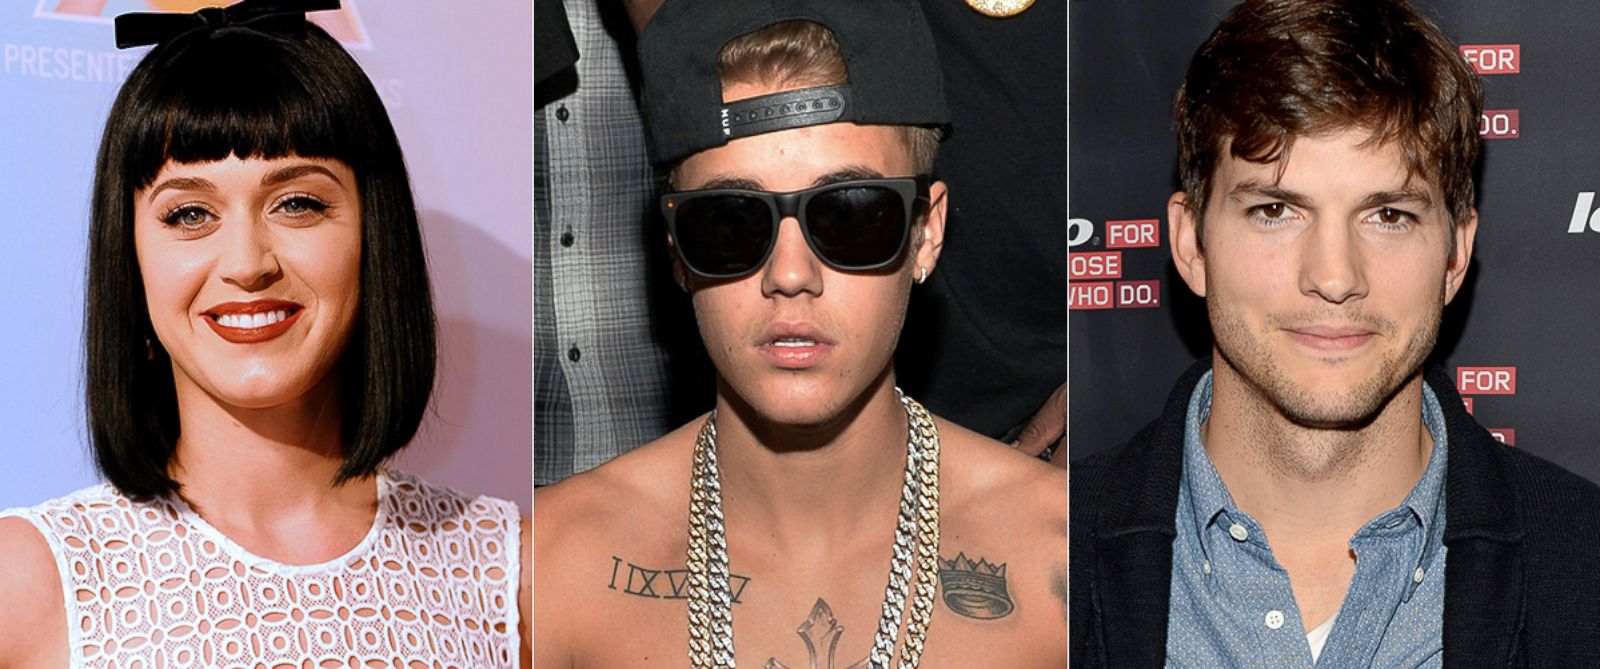 PHOTO: Katy Perry, left, is pictured in Sydney, Australia on March 4, 2014. Justin Bieber, center, is pictured in Atlanta, Ga. on Feb. 5, 2014. Ashton Kutcher, right, is pictured in Los Angeles on Oct. 29, 2013.